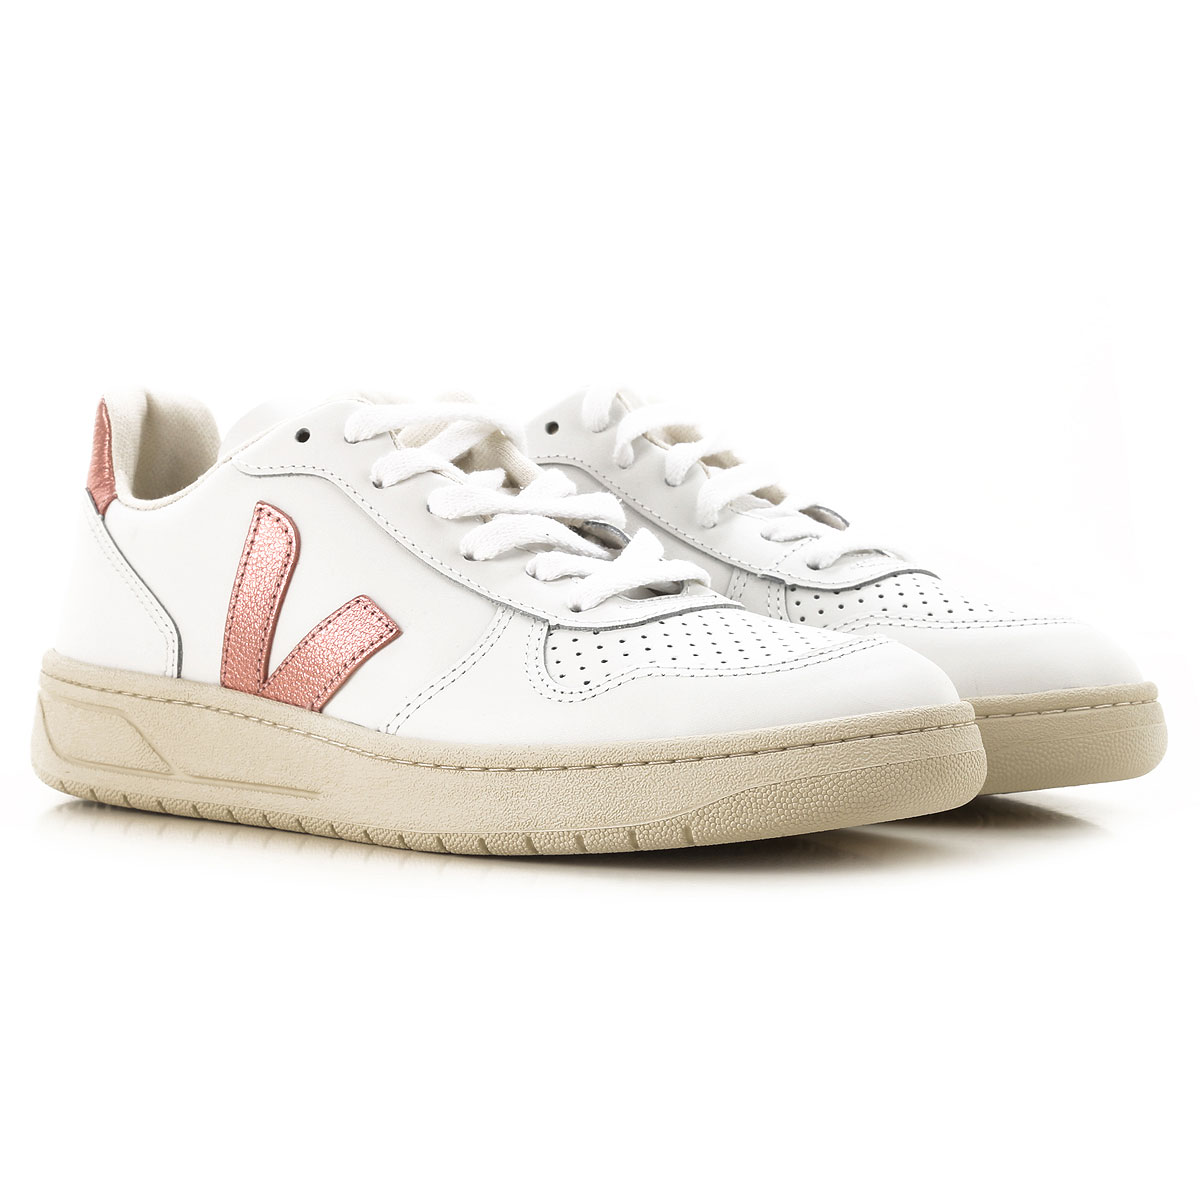 Veja Womens Shoes On Sale, Extra White, Leather, 2019, 7 9